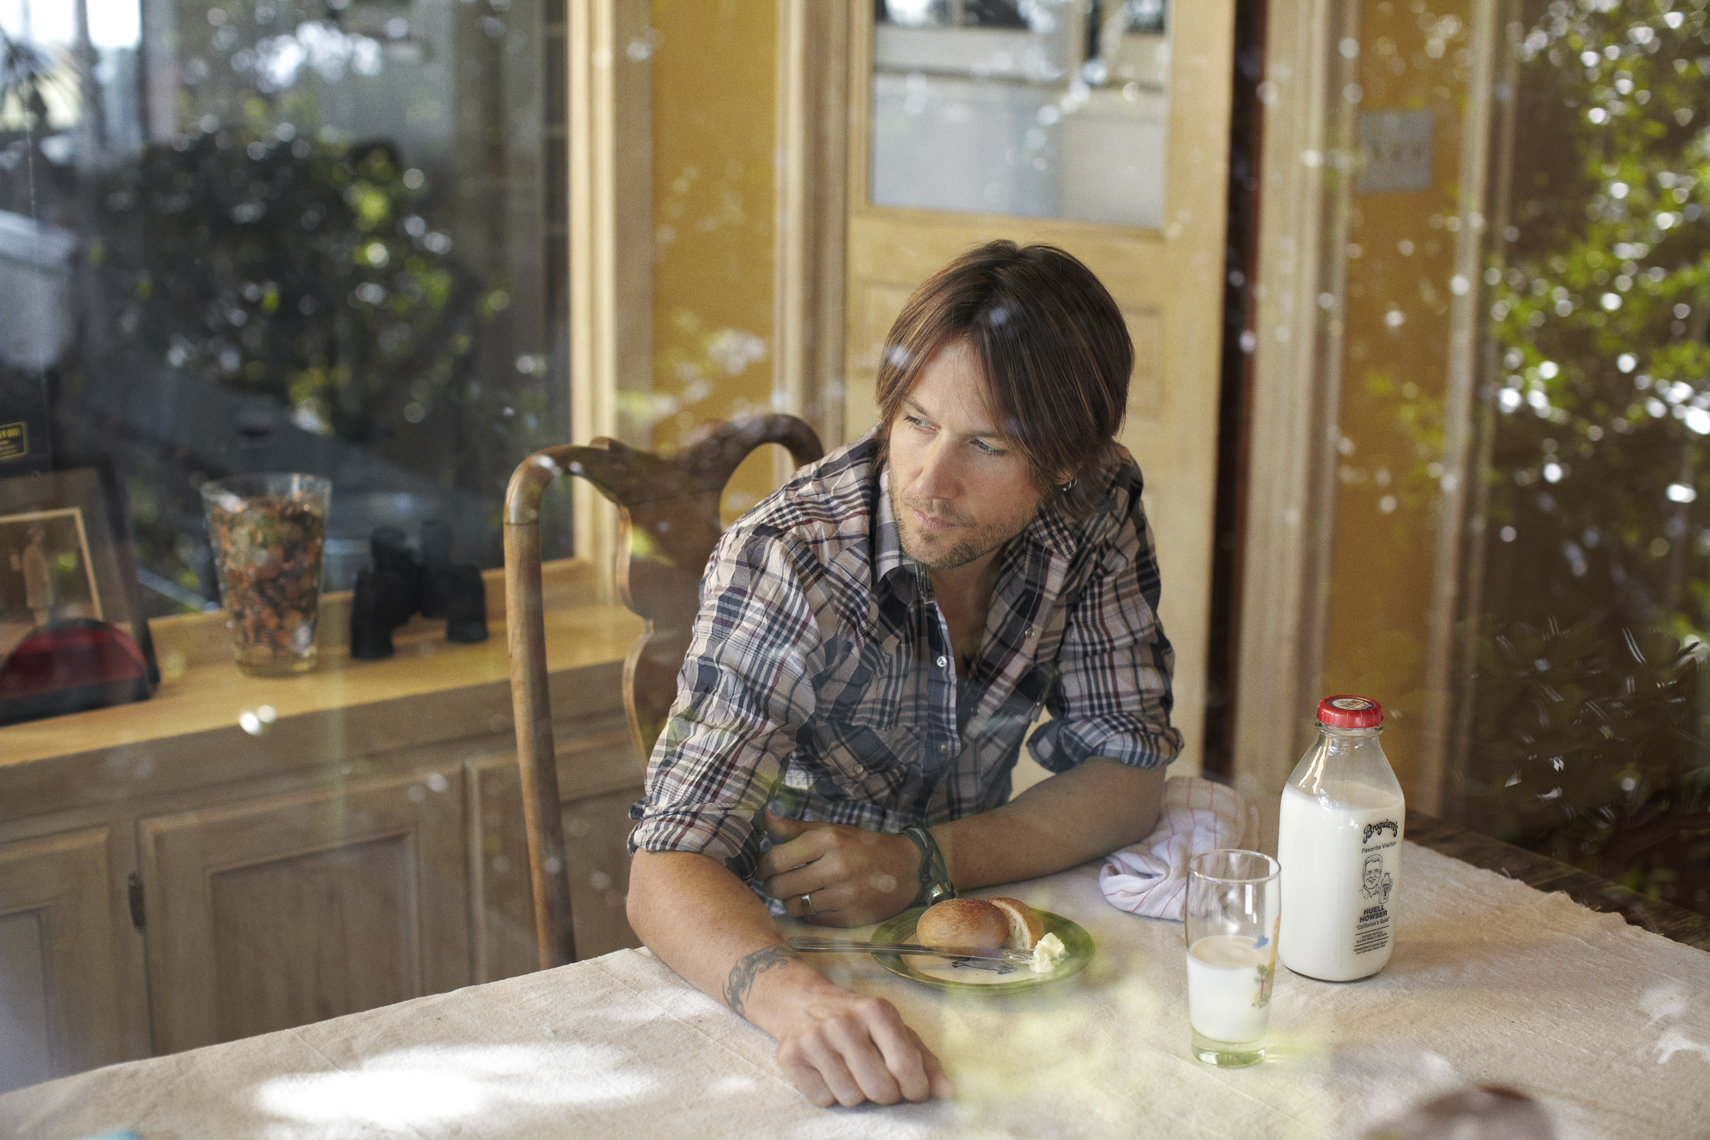 wKeith_Urban_Eating_Breakfast_People